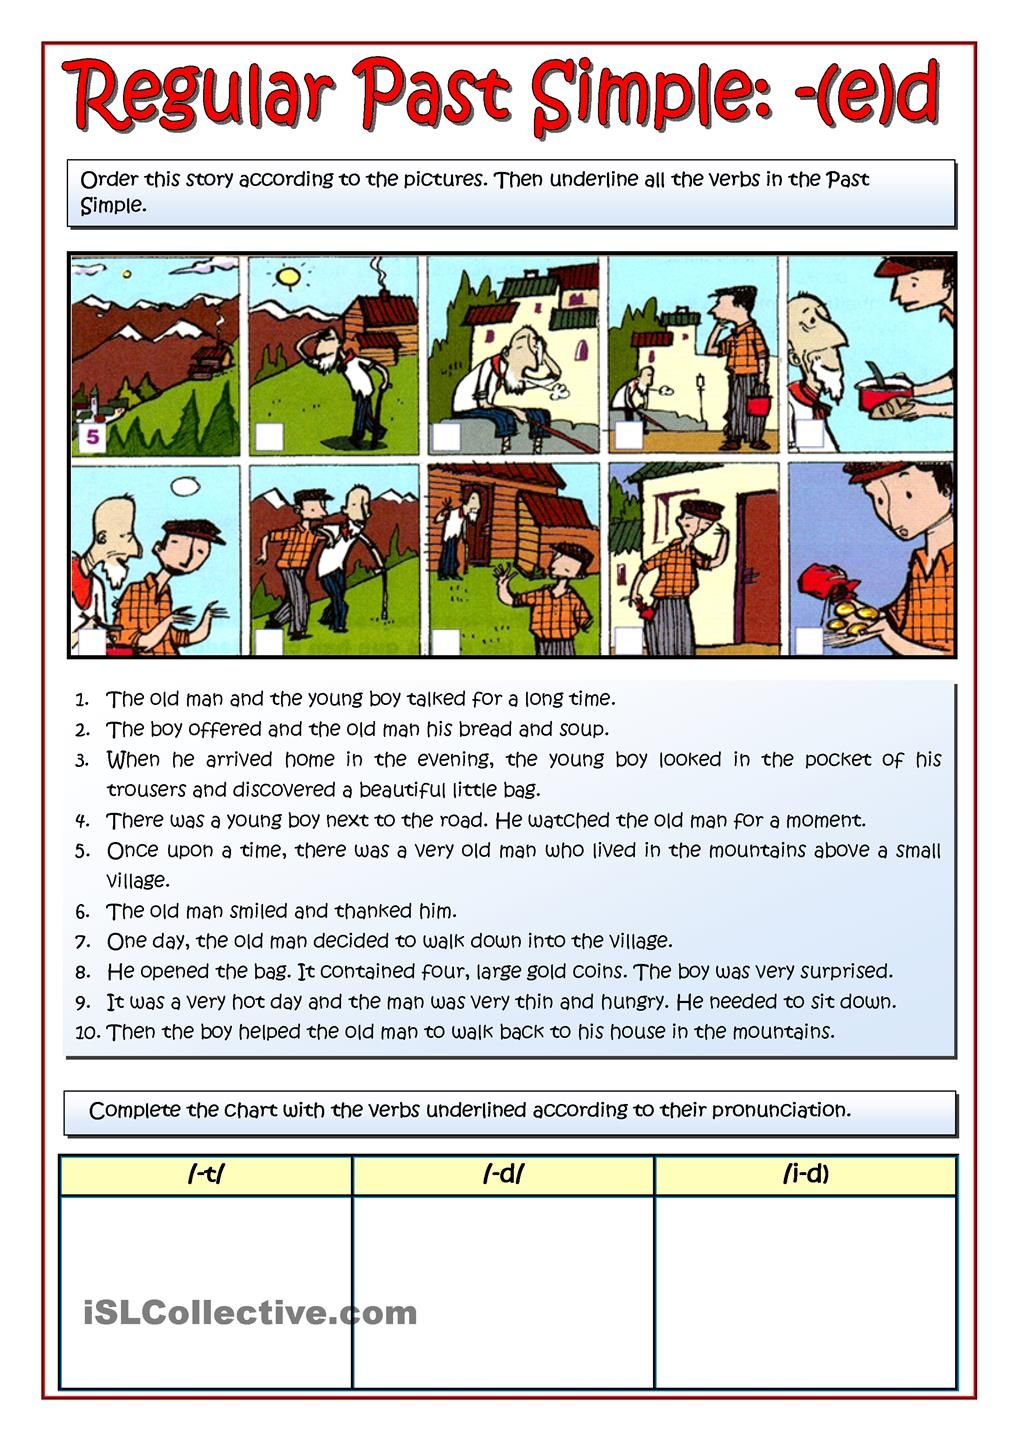 The Old Man Story Ed Past Simple Past Tense Regular Verbs Simple Stories For Kids